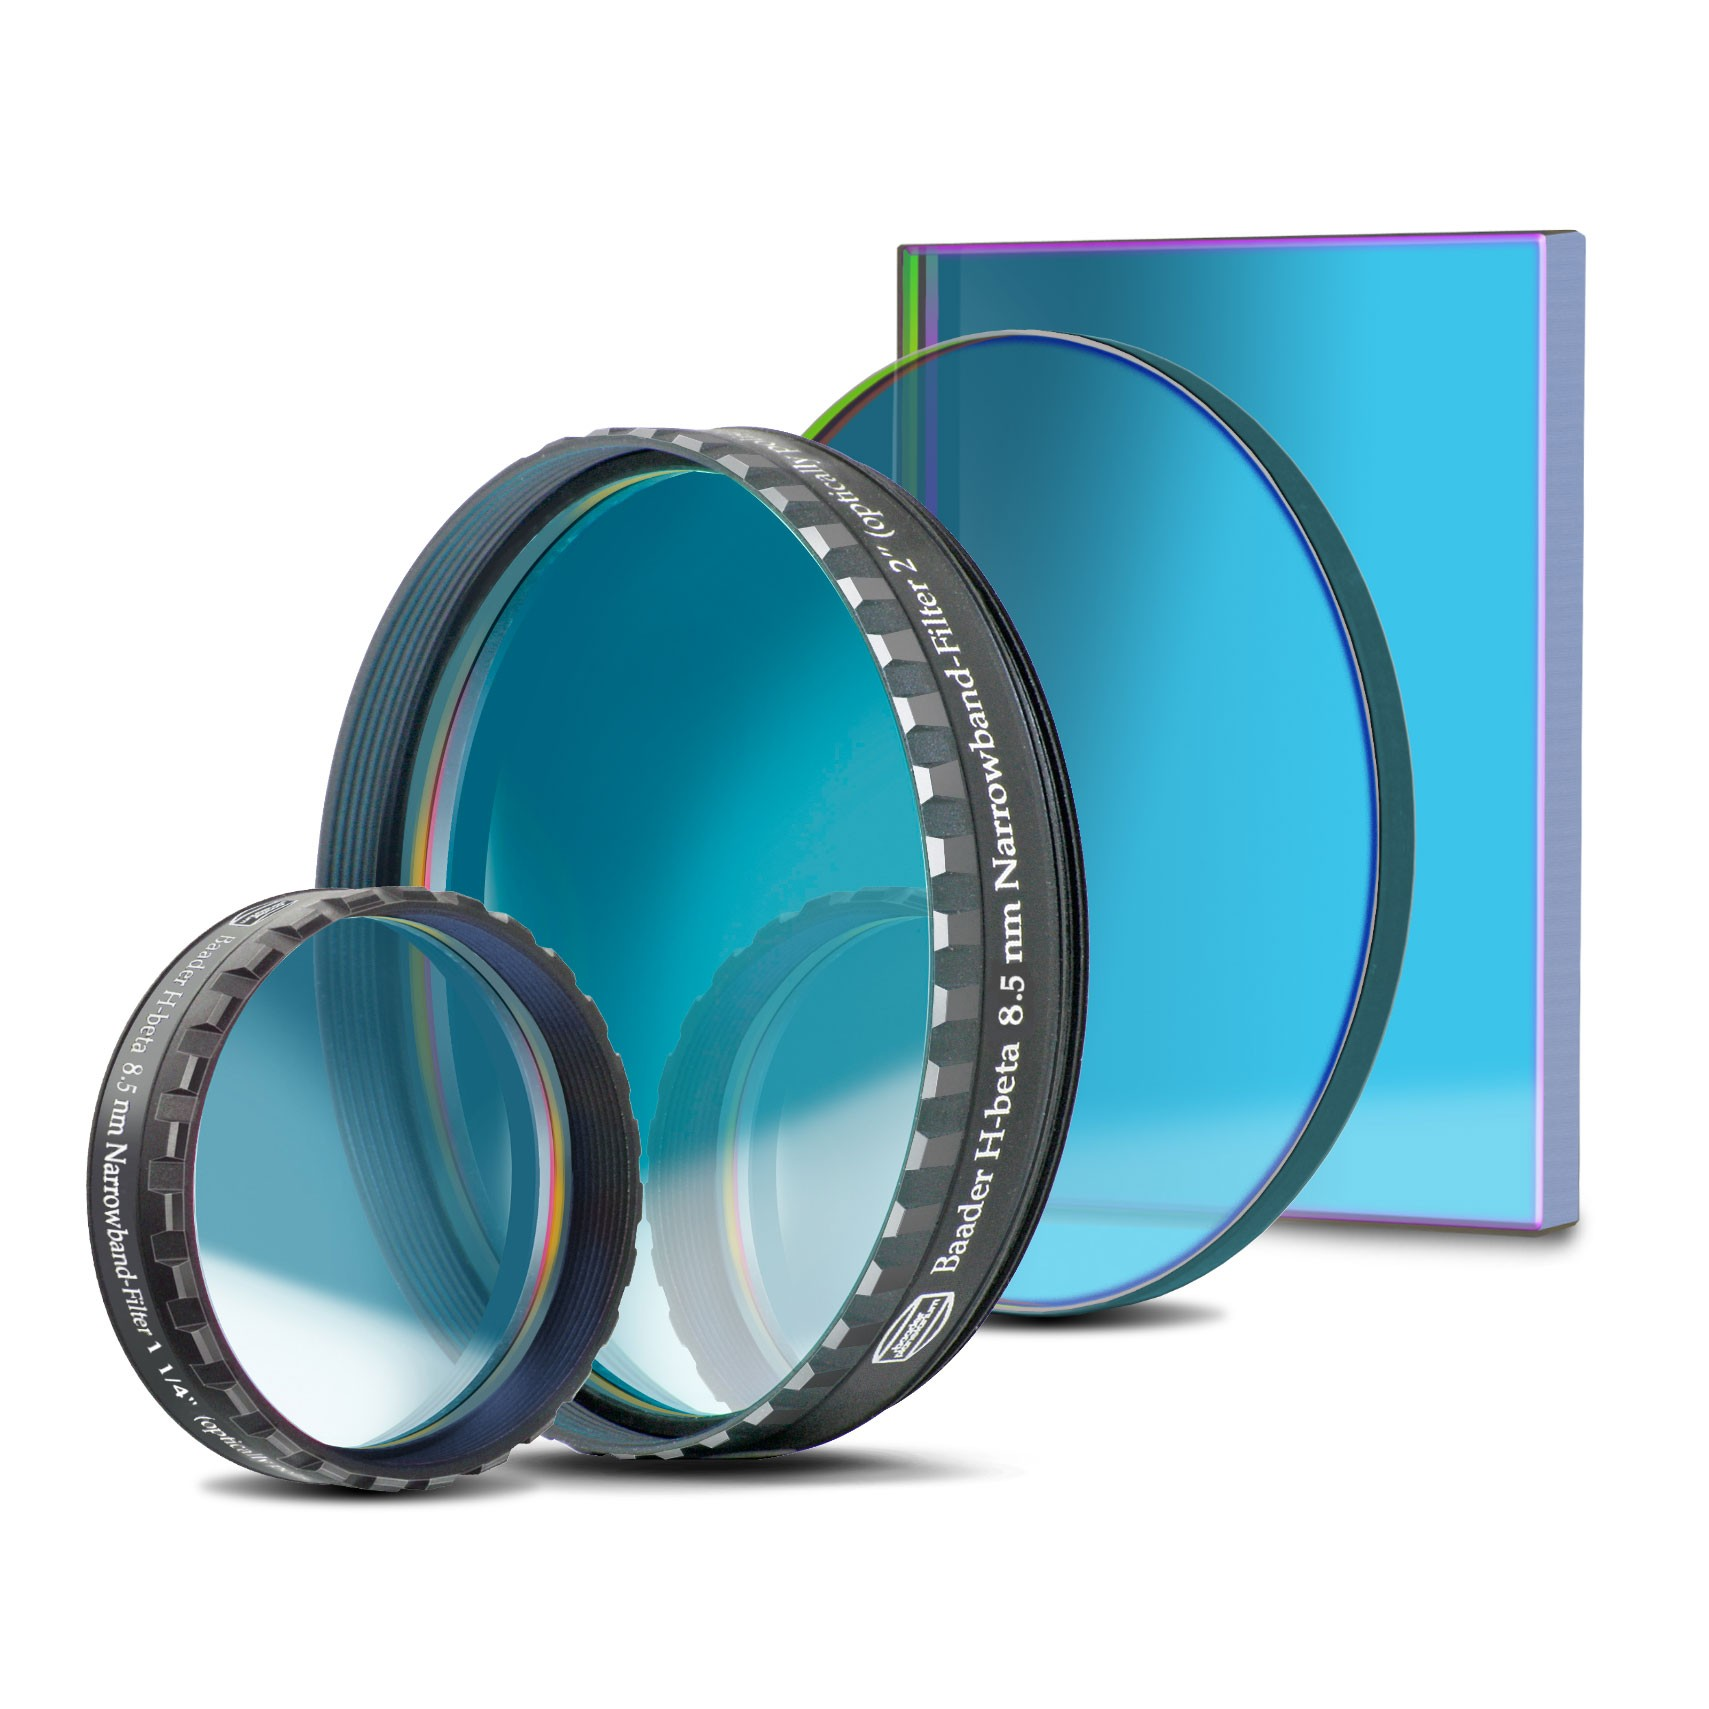 H-beta CCD-Schmalband-Filter (8,5nm)